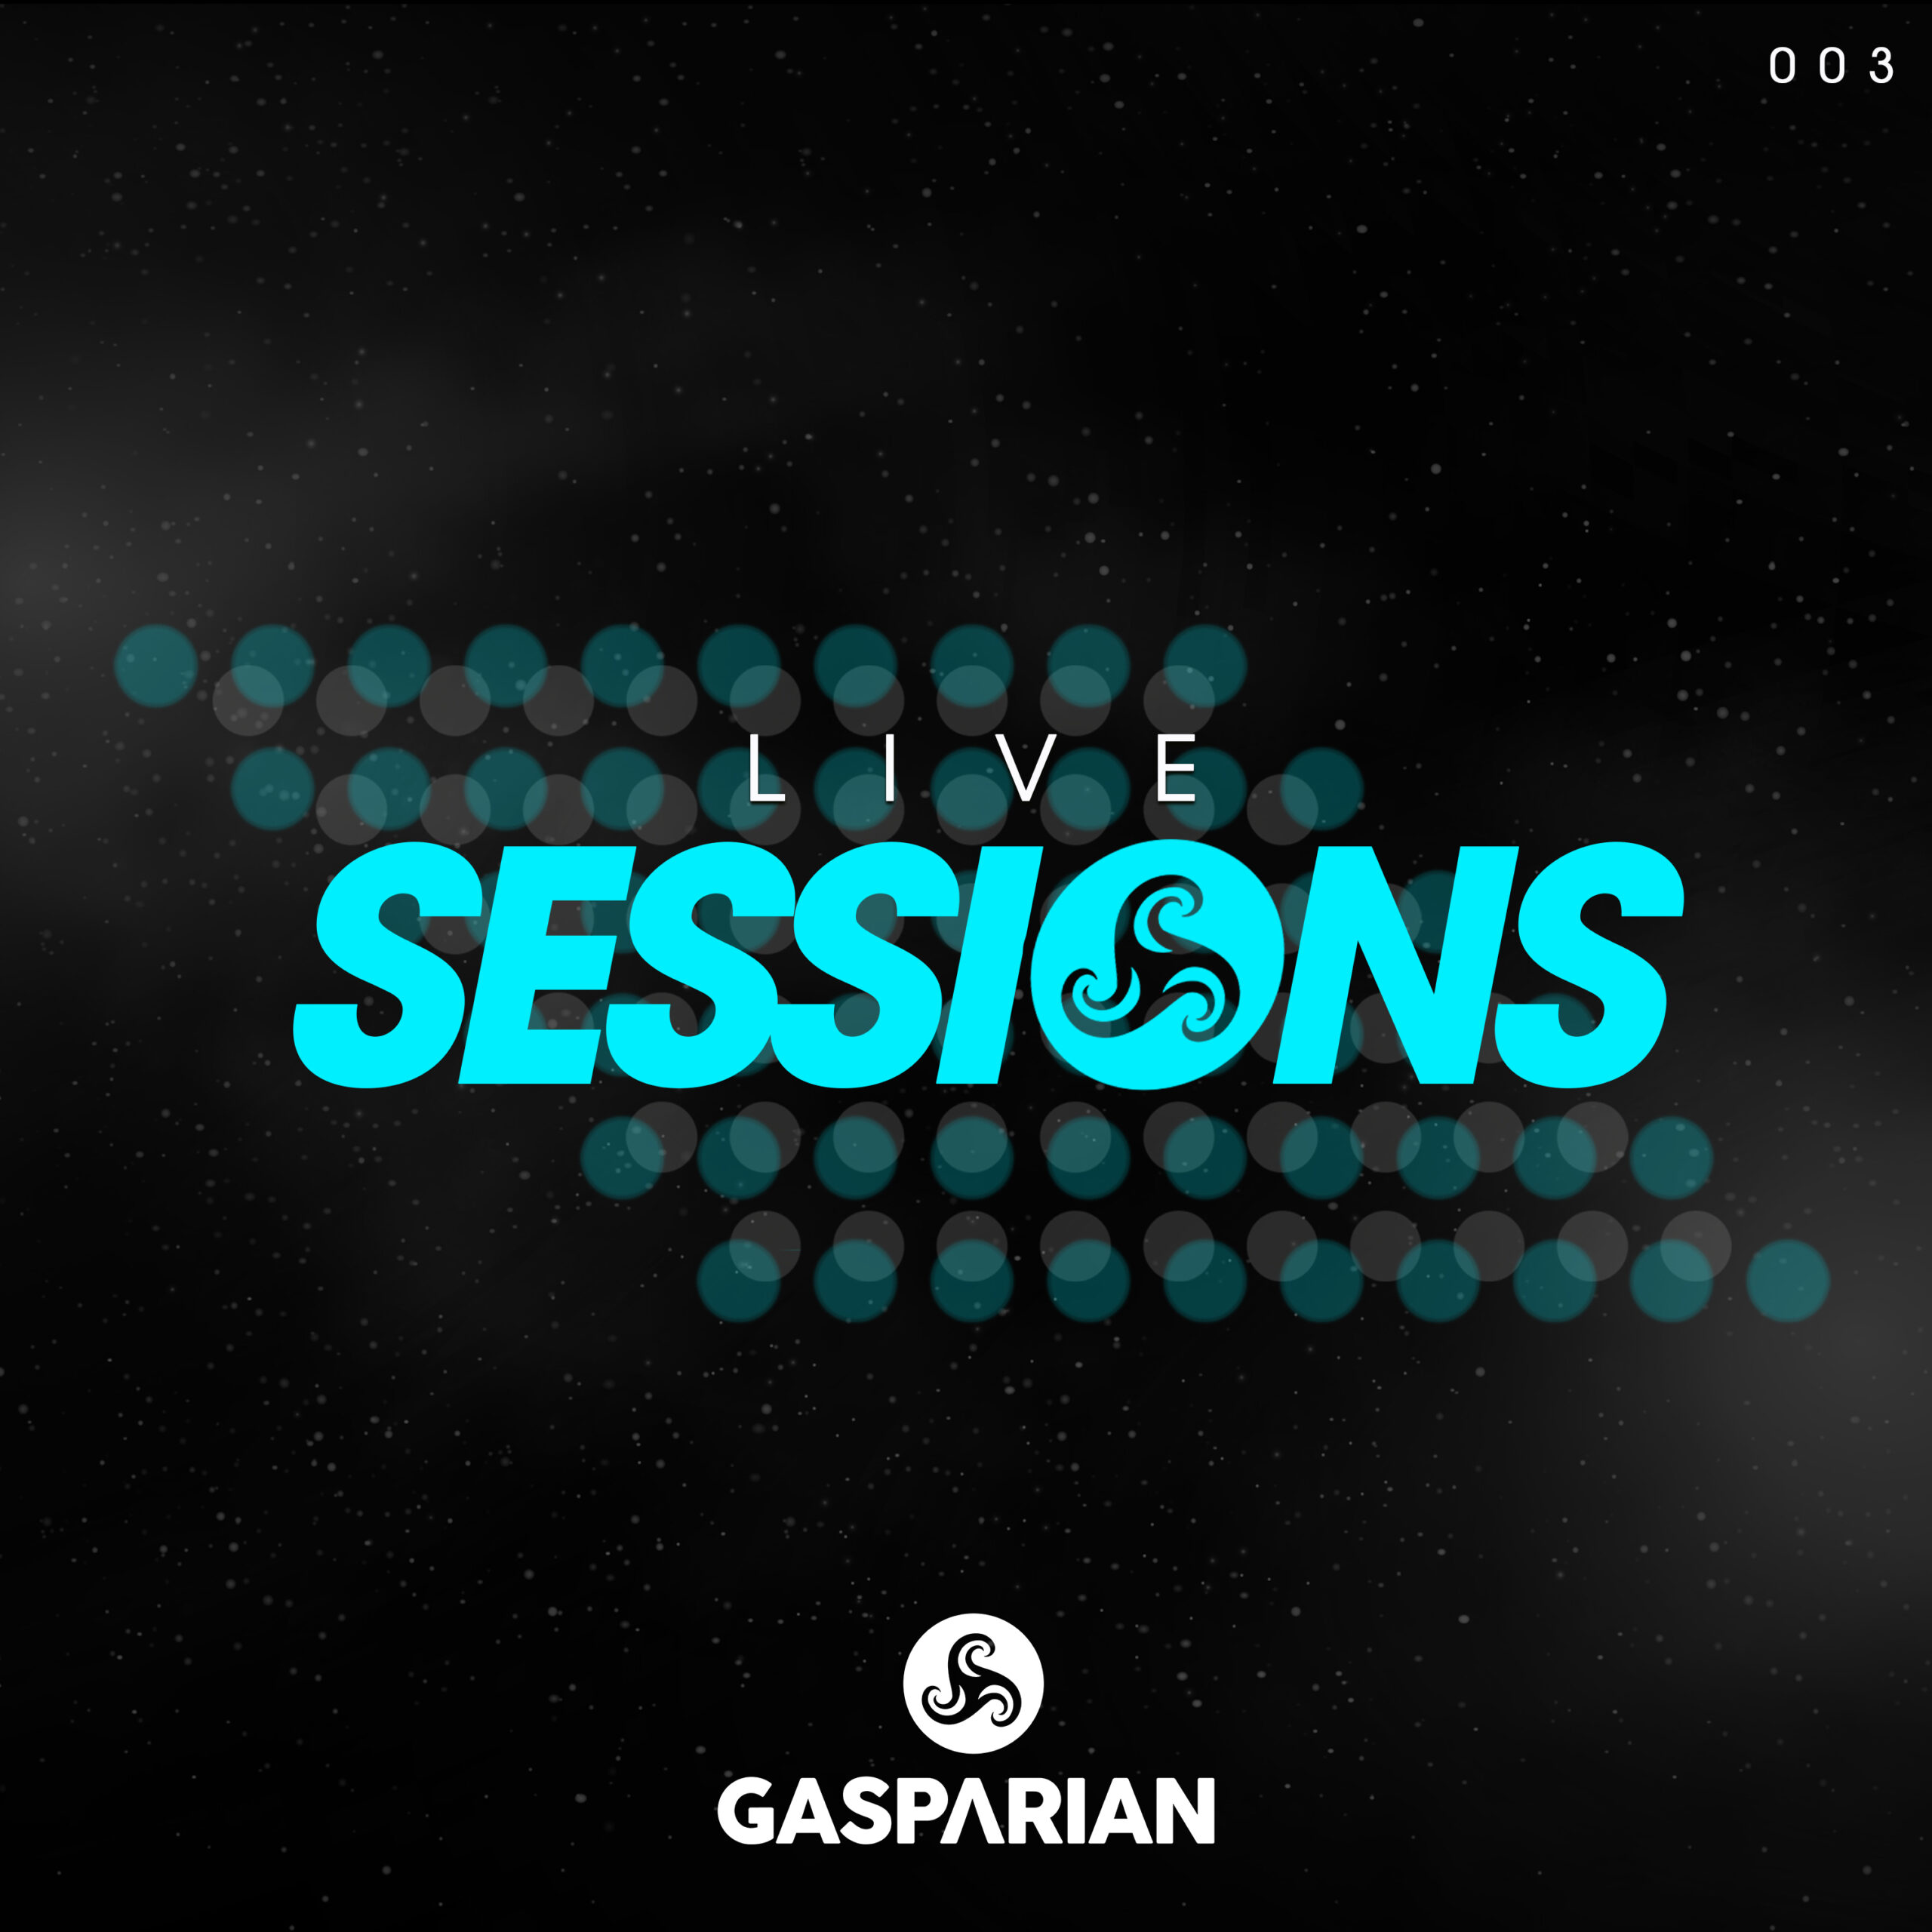 @Gasparian Live Sessions 003